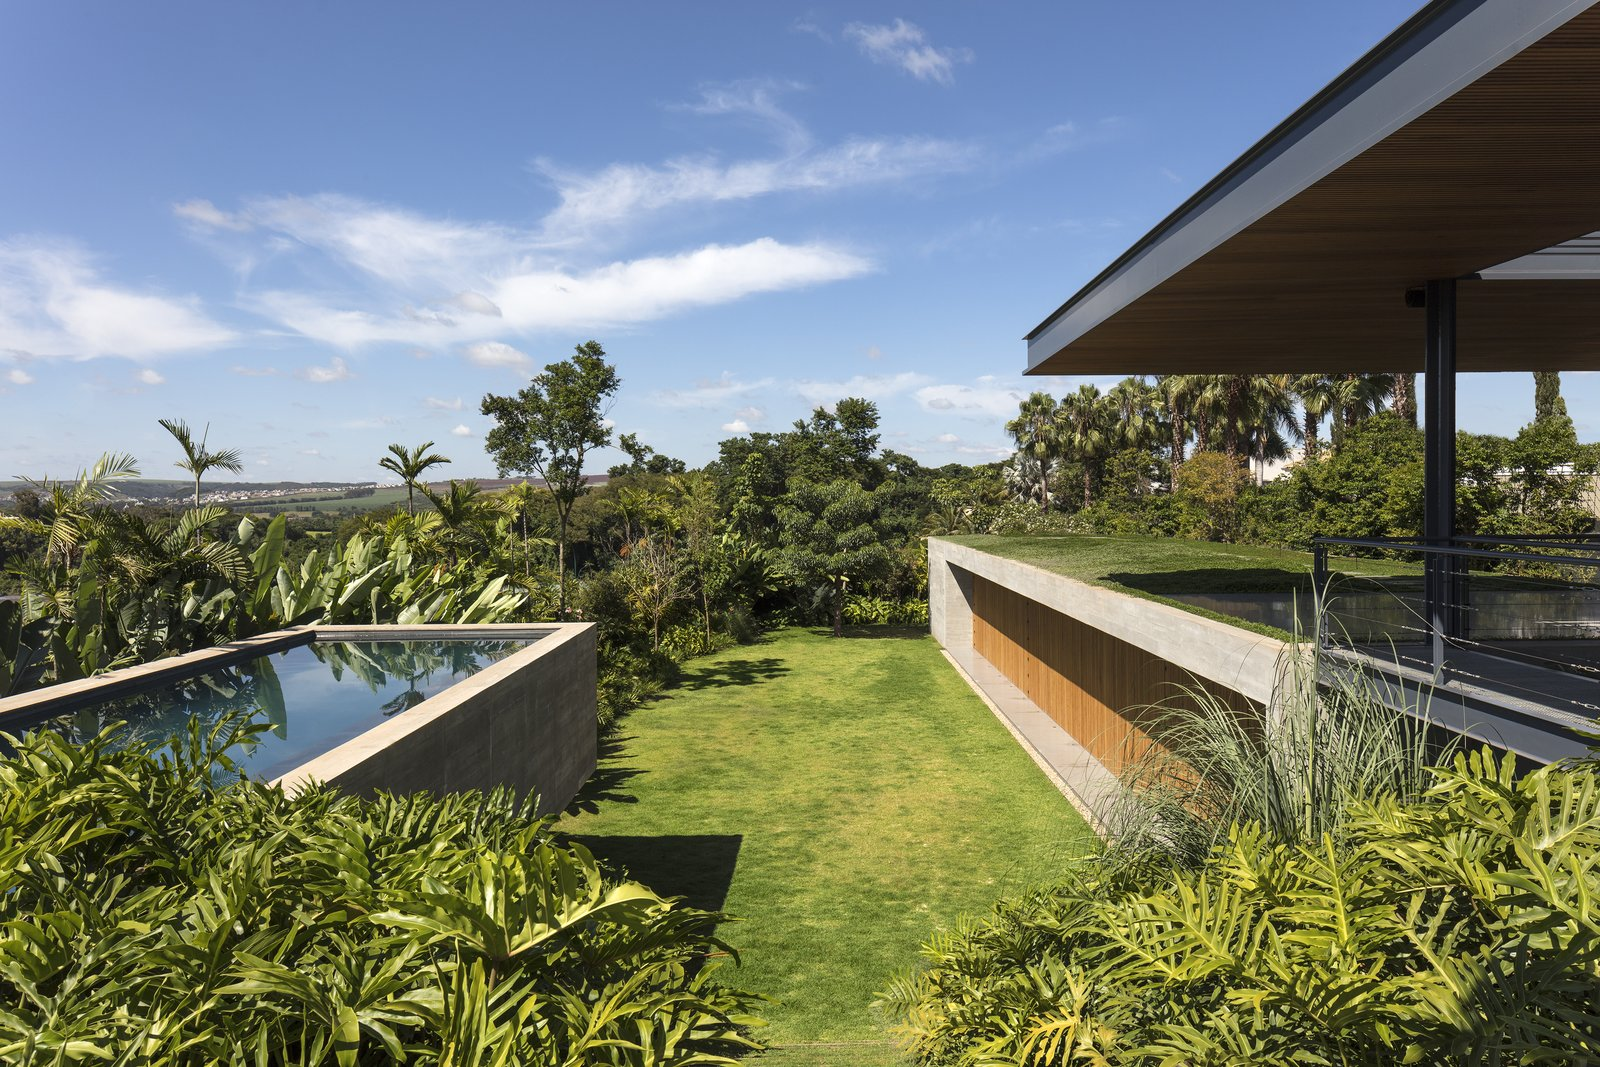 Outdoor, Gardens, Trees, Swimming Pools, Tubs, Shower, Concrete Pools, Tubs, Shower, and Back Yard A green roof further blends this hillside home into the landscape, while providing thermal comforts for this warm climate.   Photo 8 of 12 in A Green Roof Helps Camouflage This Striking Home in Brazil